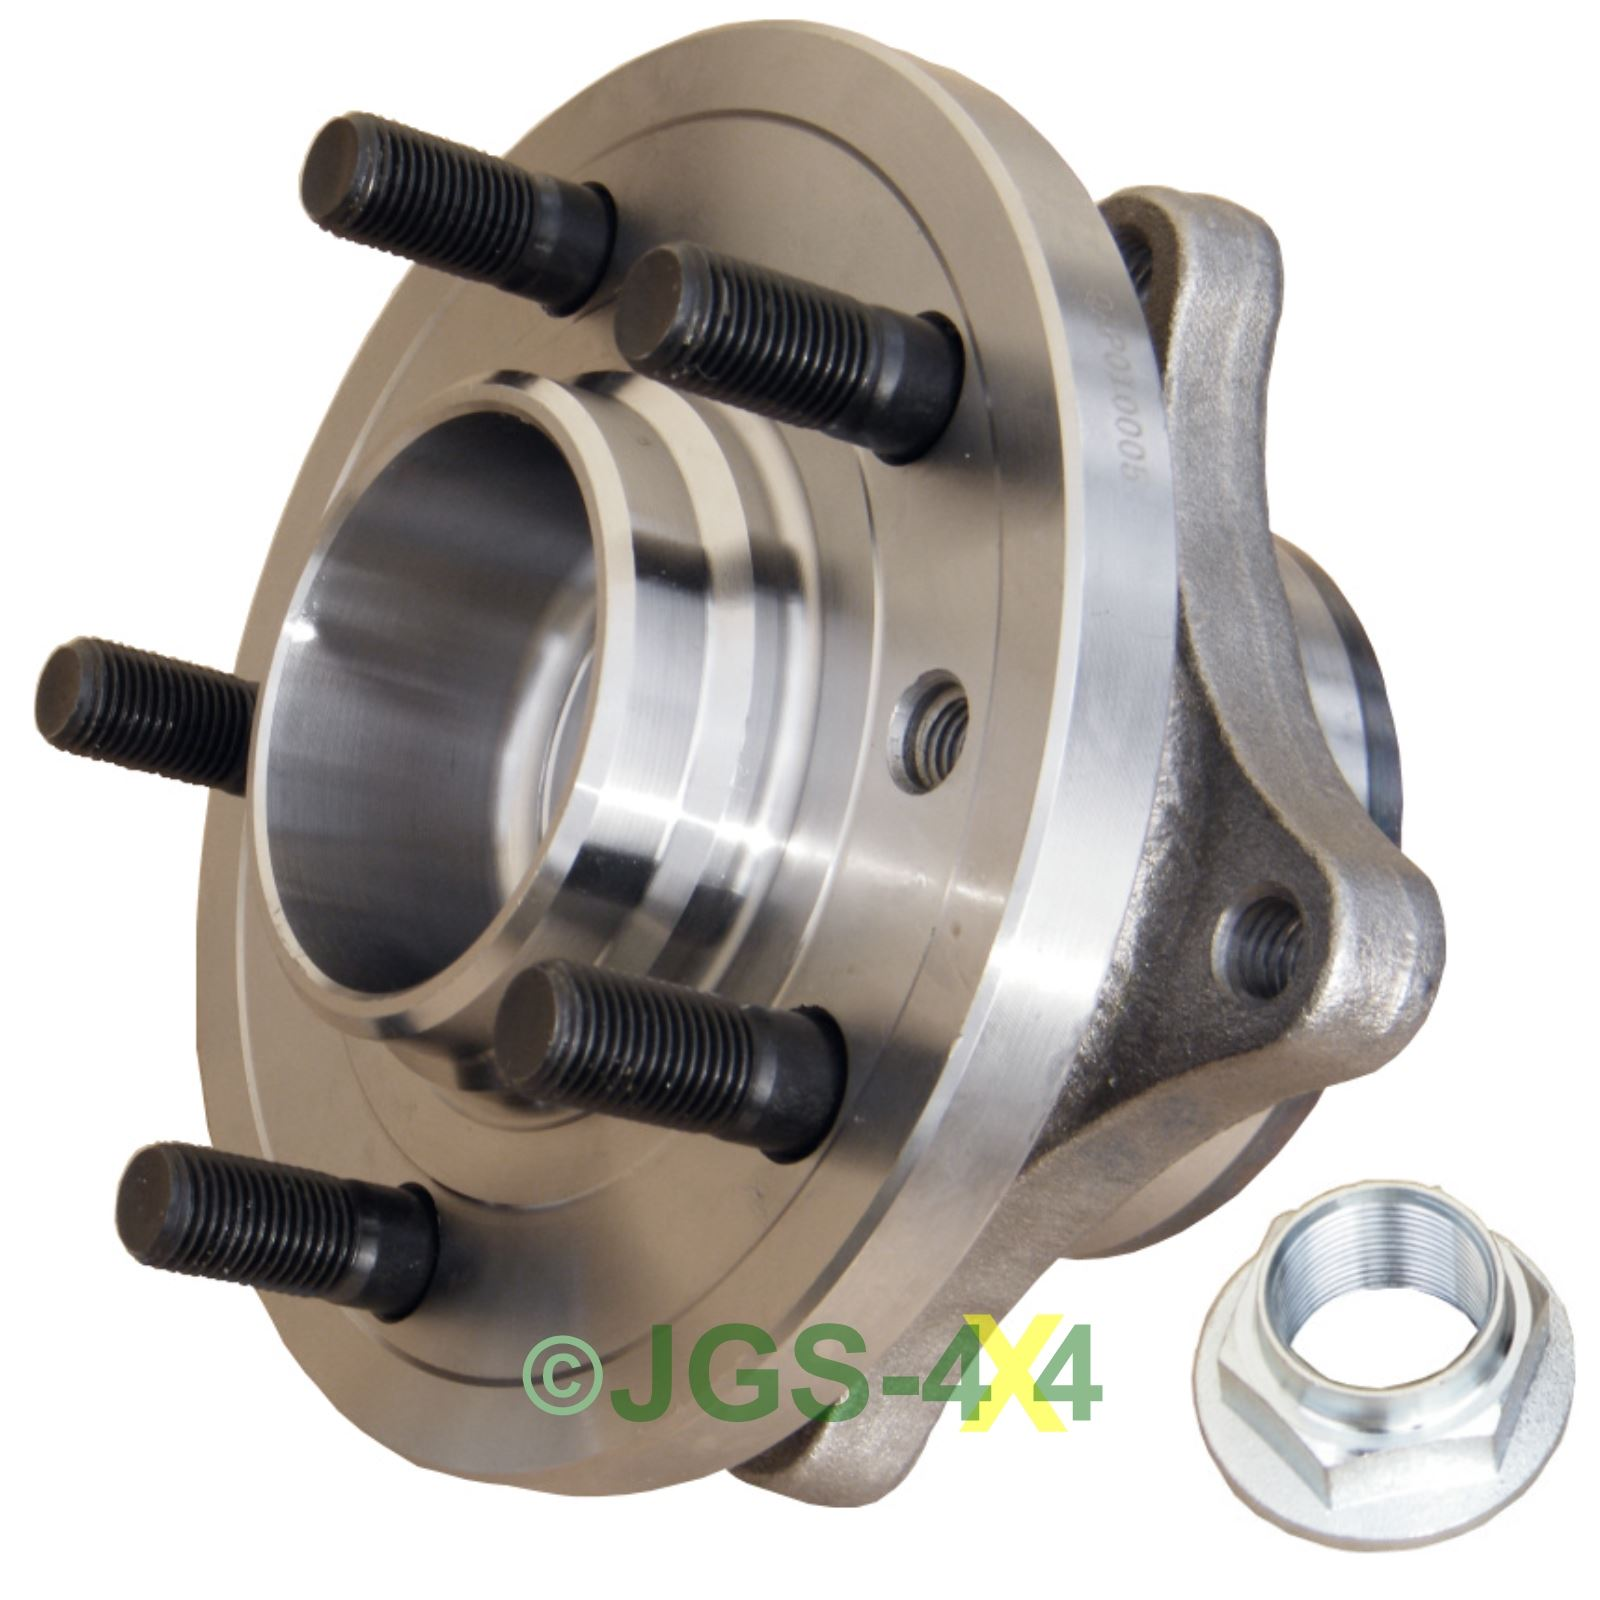 Land Rover Discovery 2 Range Rover P38 Rear Lhs N S: Land Rover Discovery 3 & 4 Front Wheel Bearing Hub